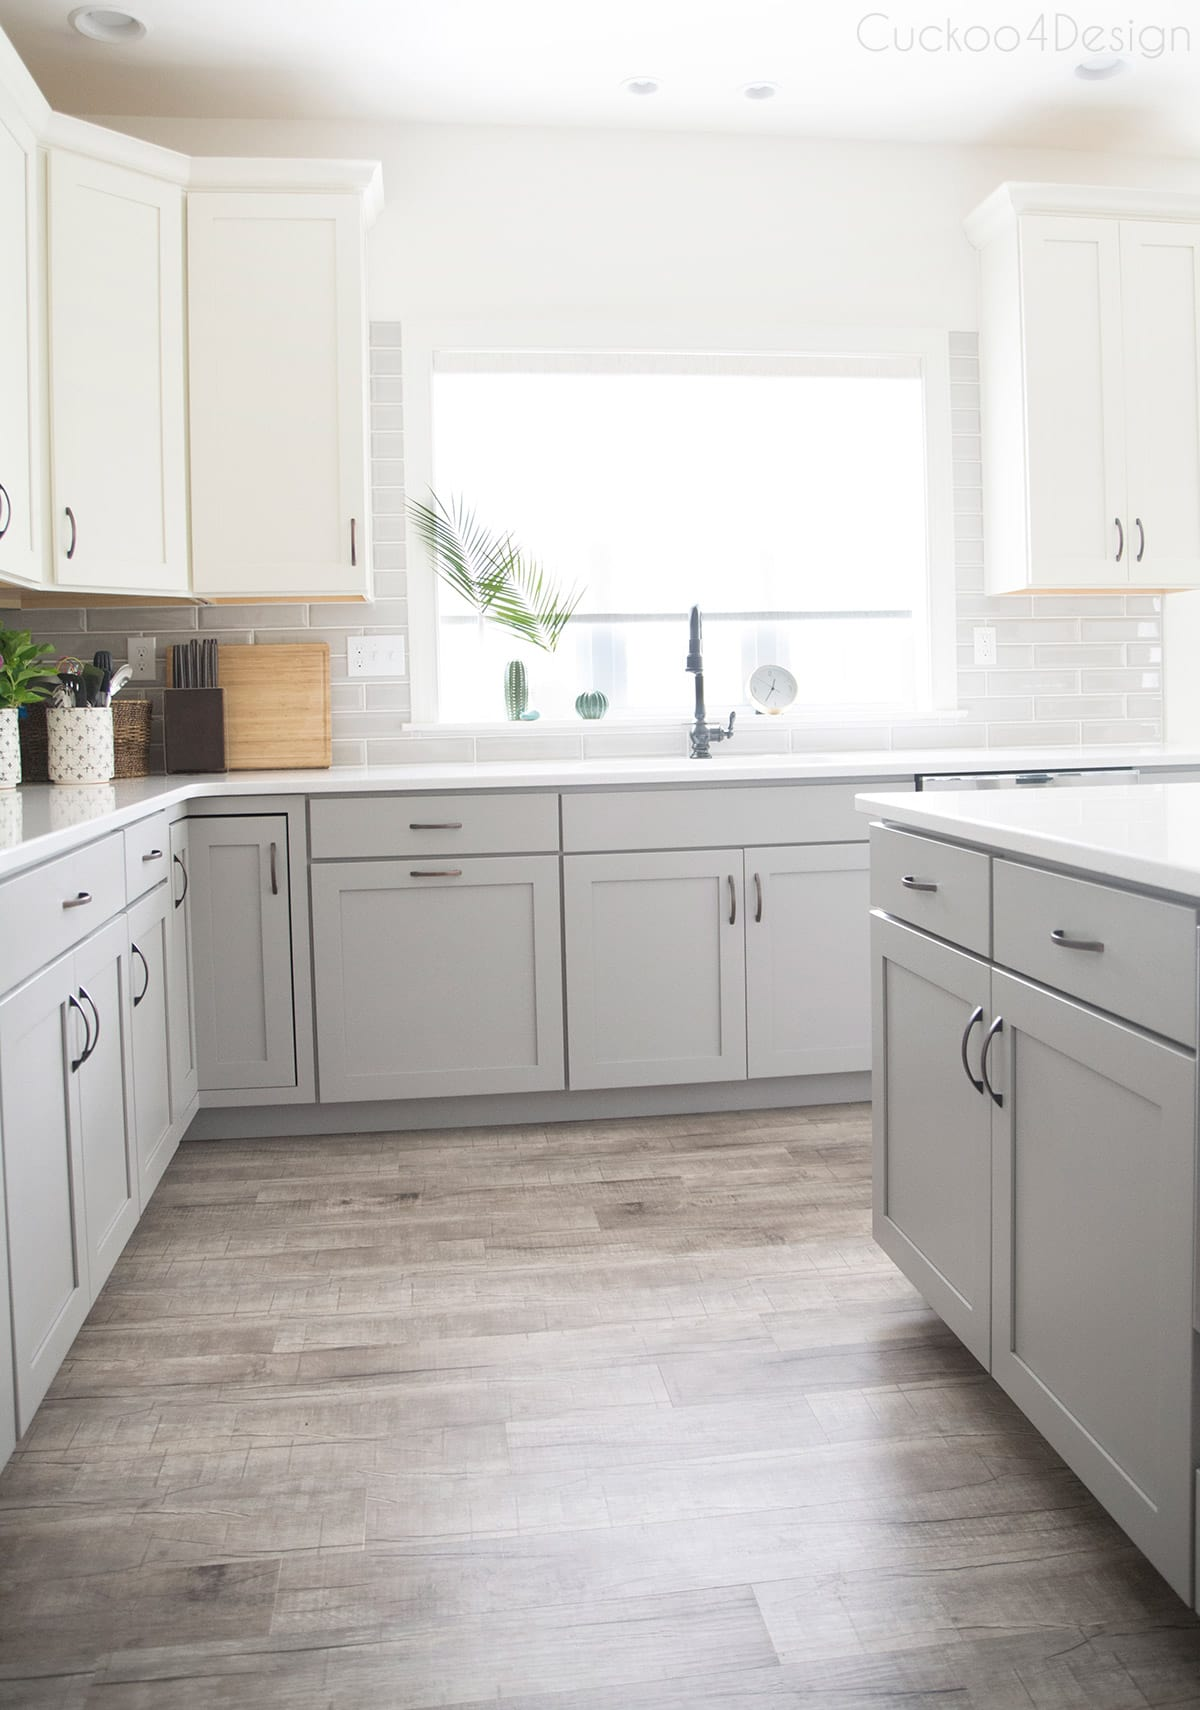 glossy grey subway tiles in white and gray kitchen with vinyl plank flooring